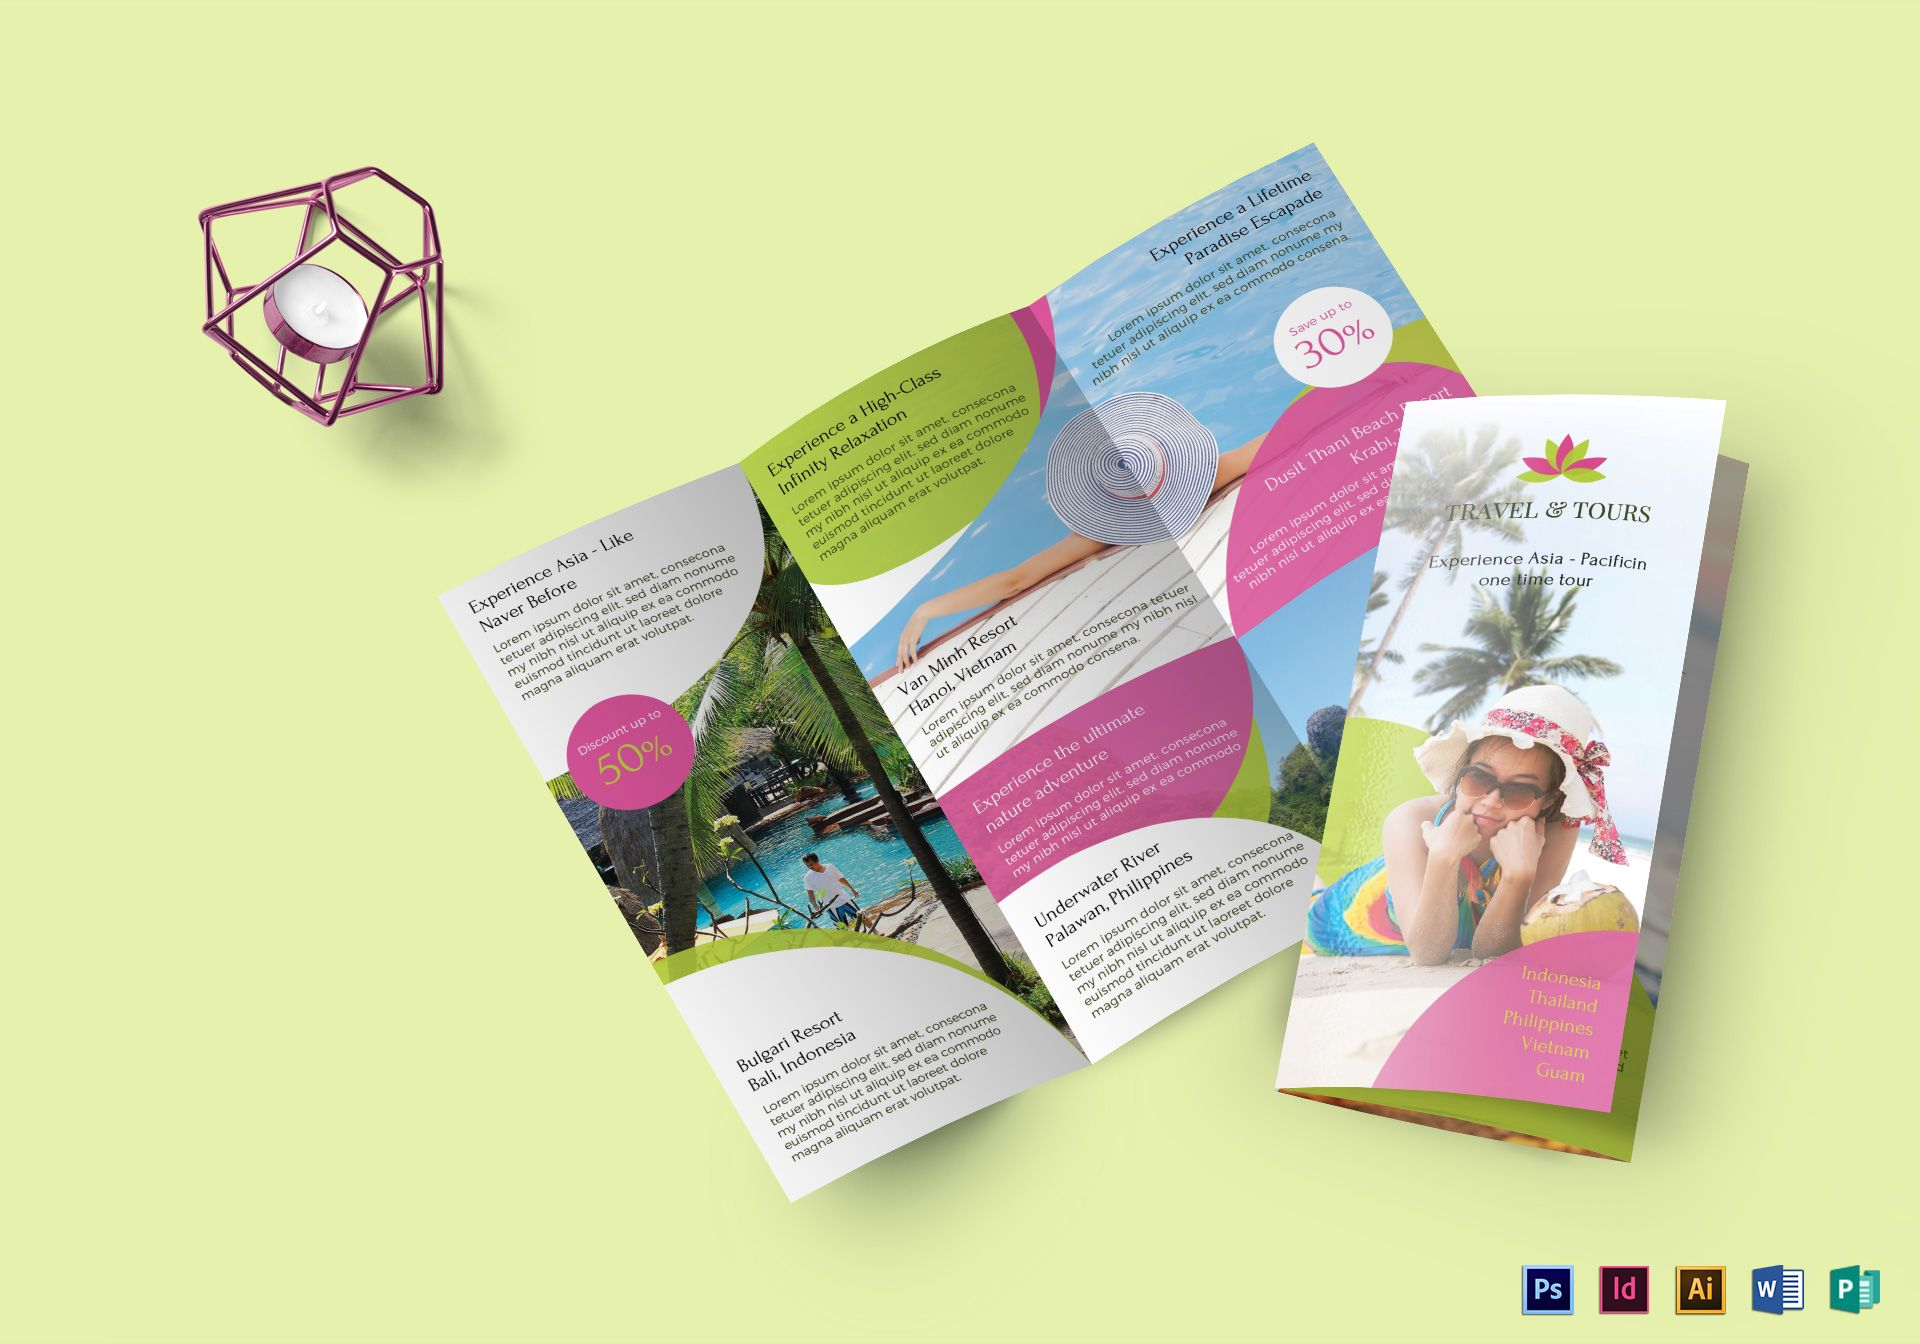 tourism brochure design ideas - travel and tour brochure design template in psd word